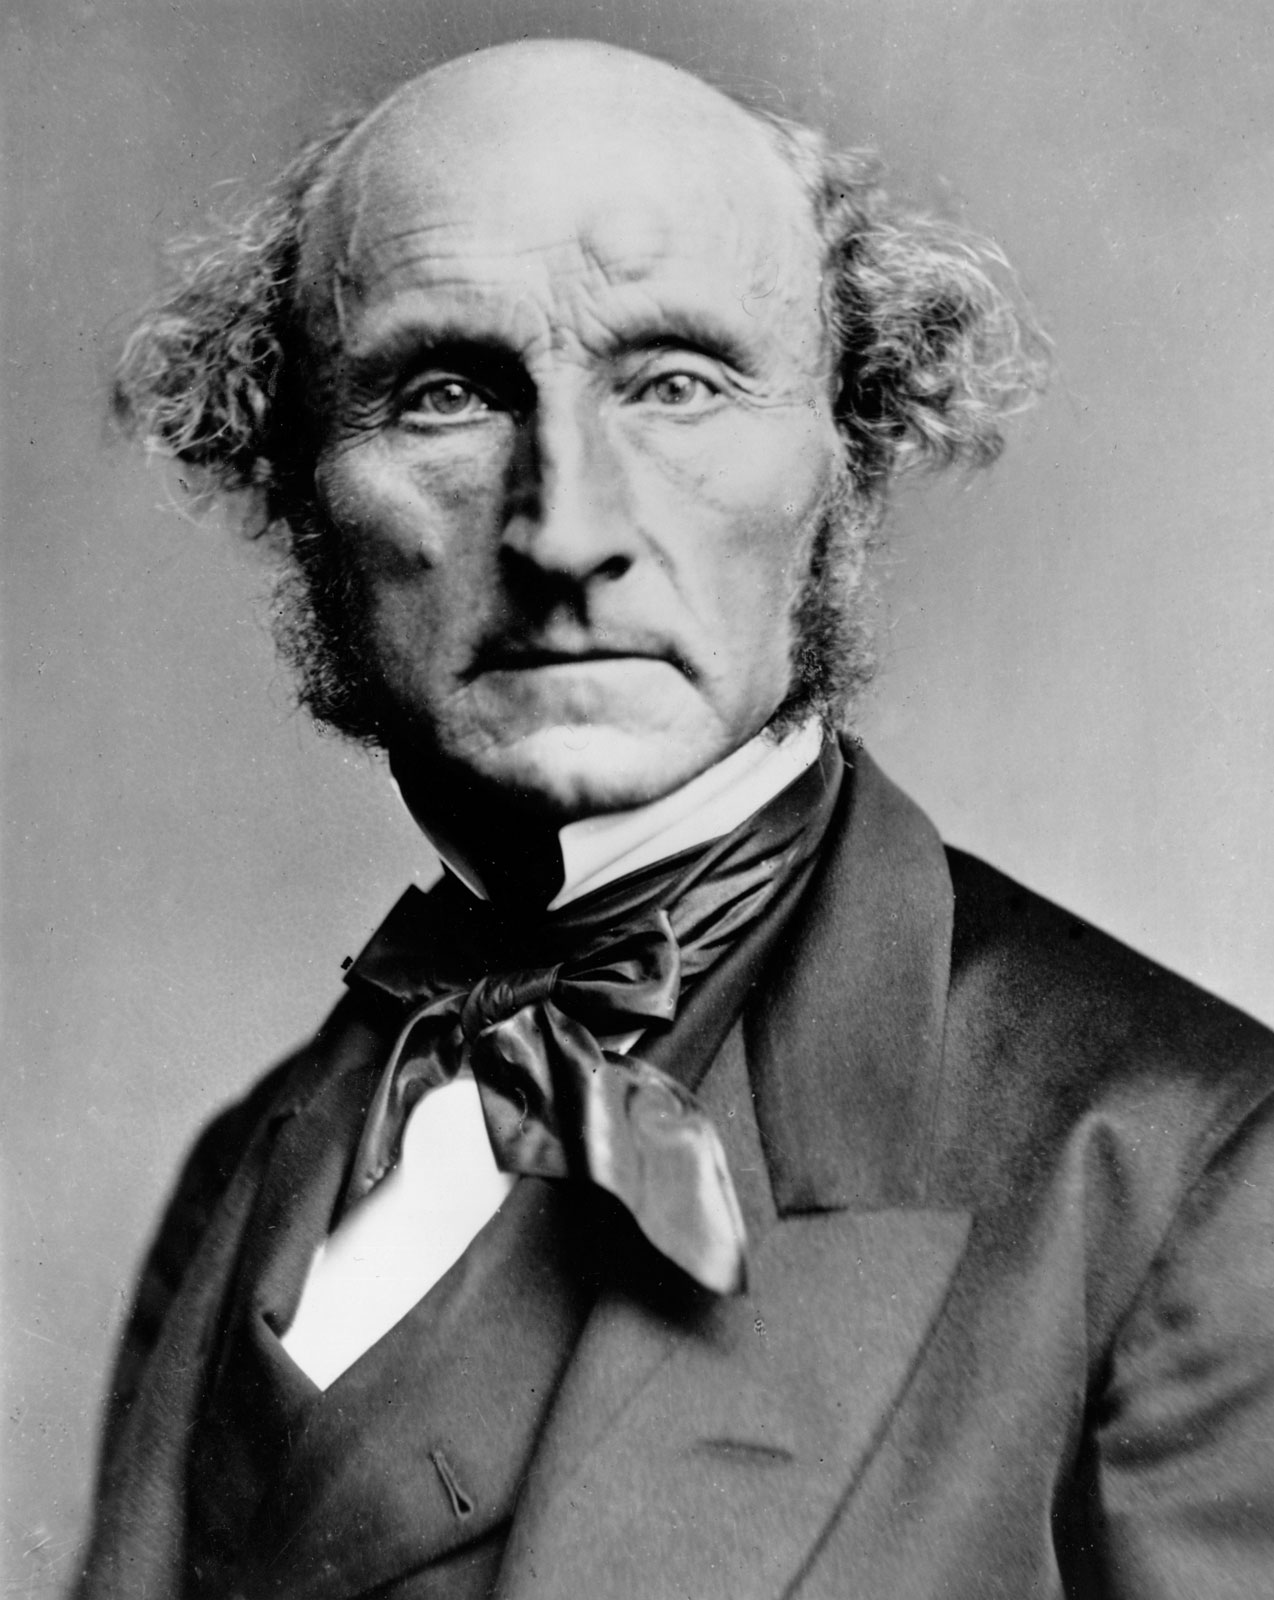 an introduction to the life of john stuart mill Personal liberty and public goodis a compelling addition to the corpus of writing on the work of john stuart mill it will be of great interest to historians of political thought, liberalism, and translation, as well as scholars of east asian studies.